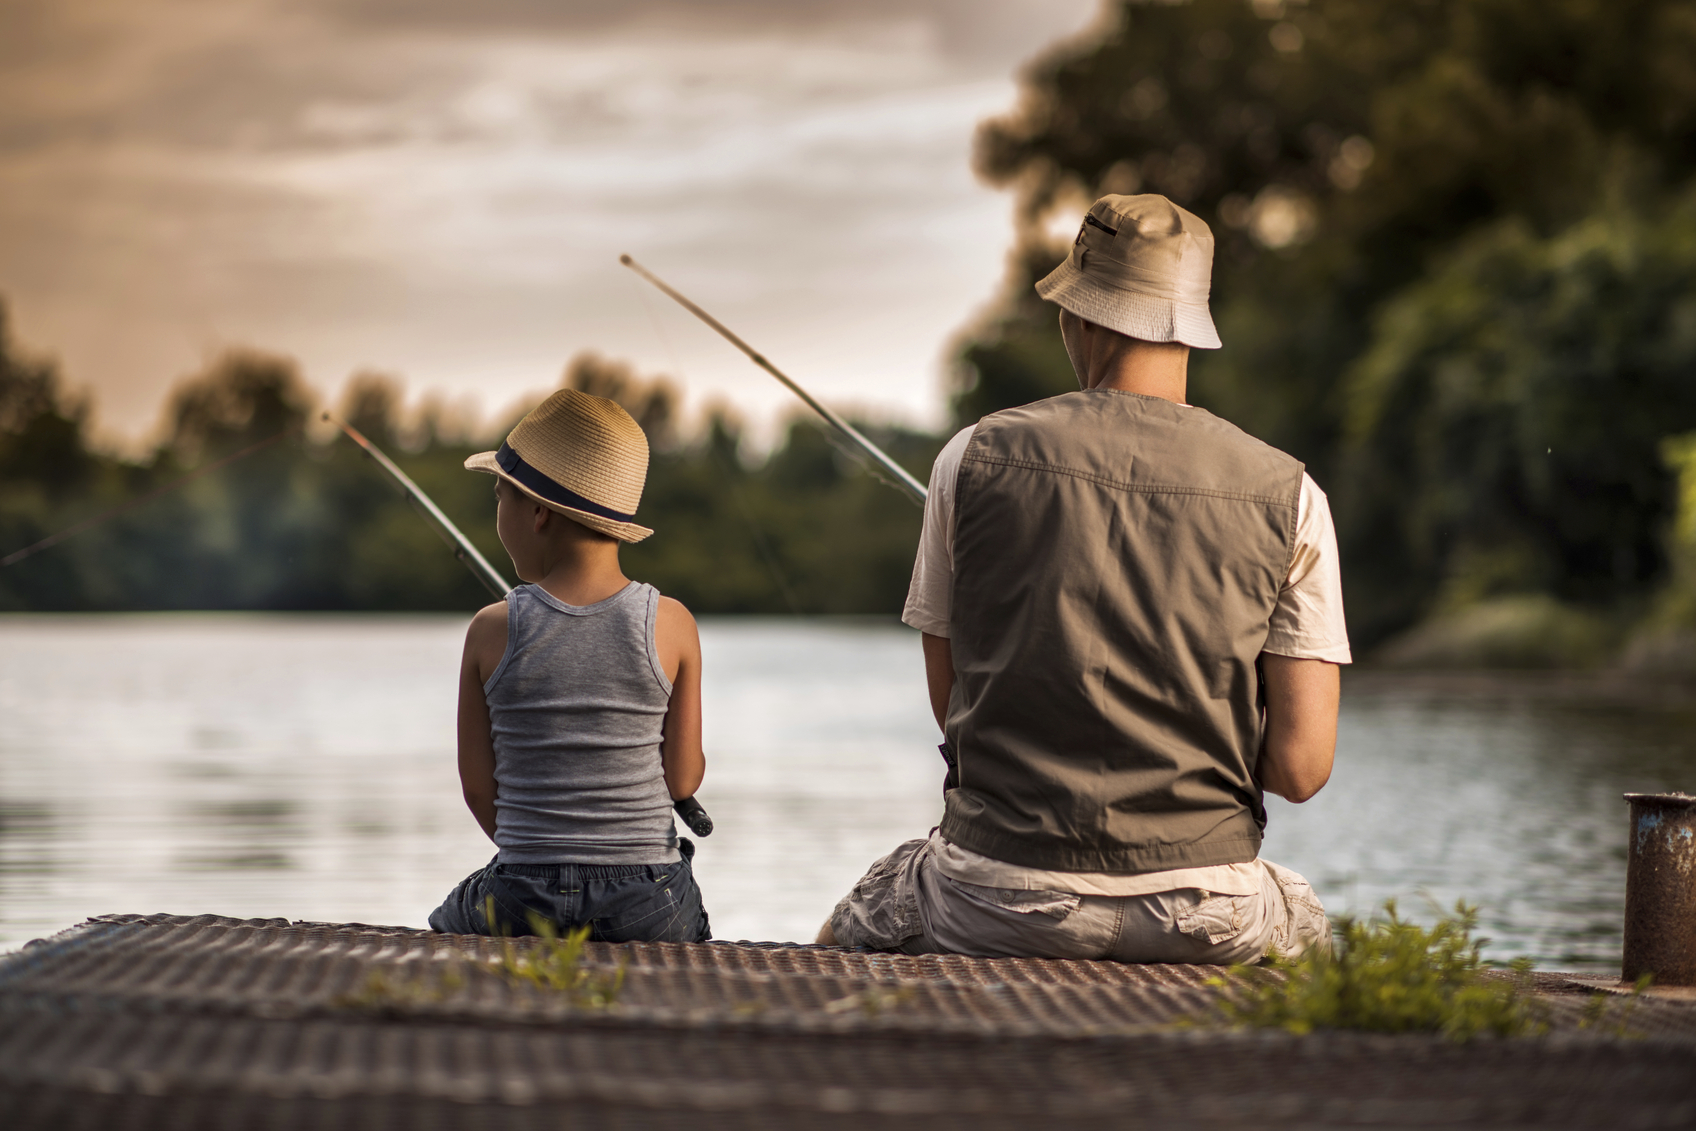 Simple Pleasures For A Special Father's Day